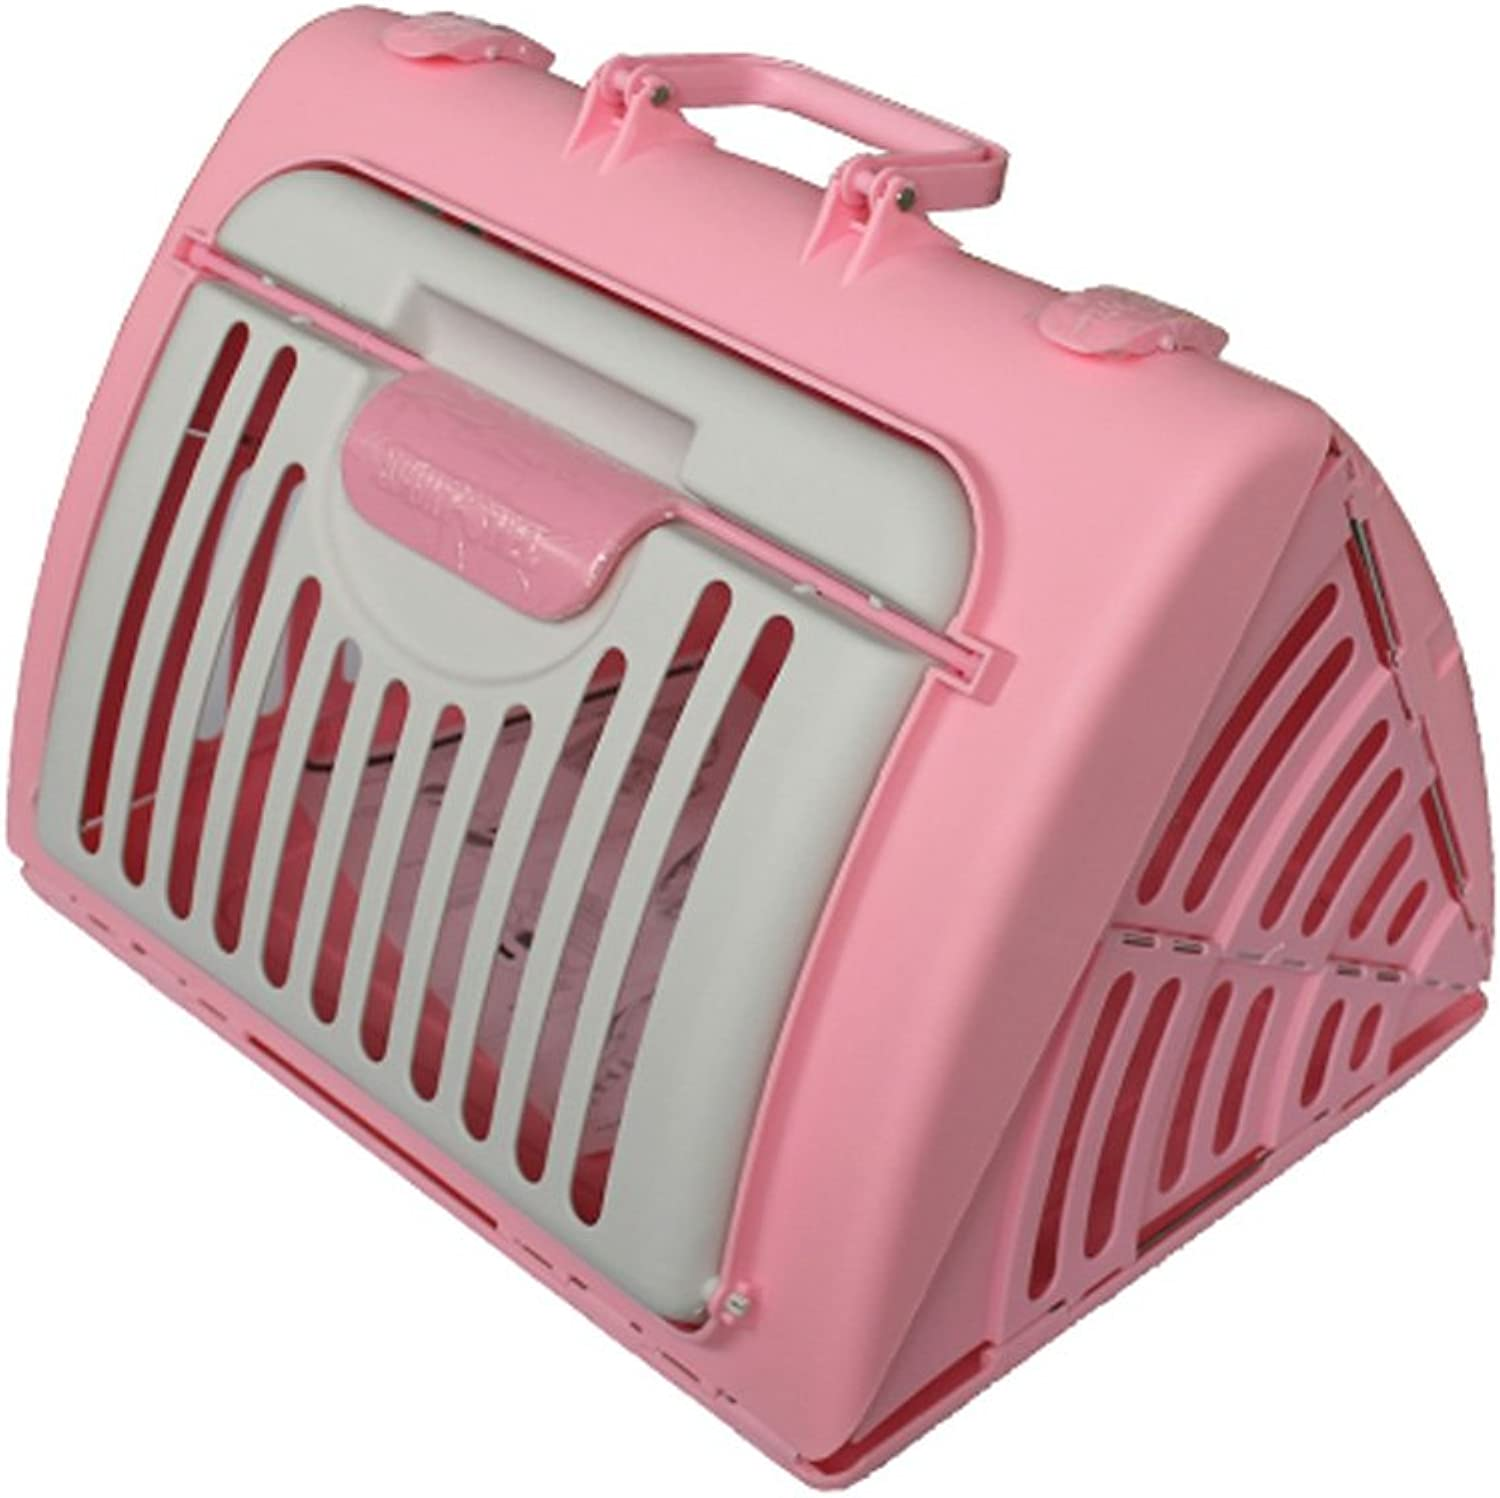 Pet Travel Bag Travel Portable Pet Carrier Folding Outdoor Picnic Hiking Comfortable Breathable Pet Cage Pet Car Seat Pet Booster Seat Pink(45cmx35cmx33cm)